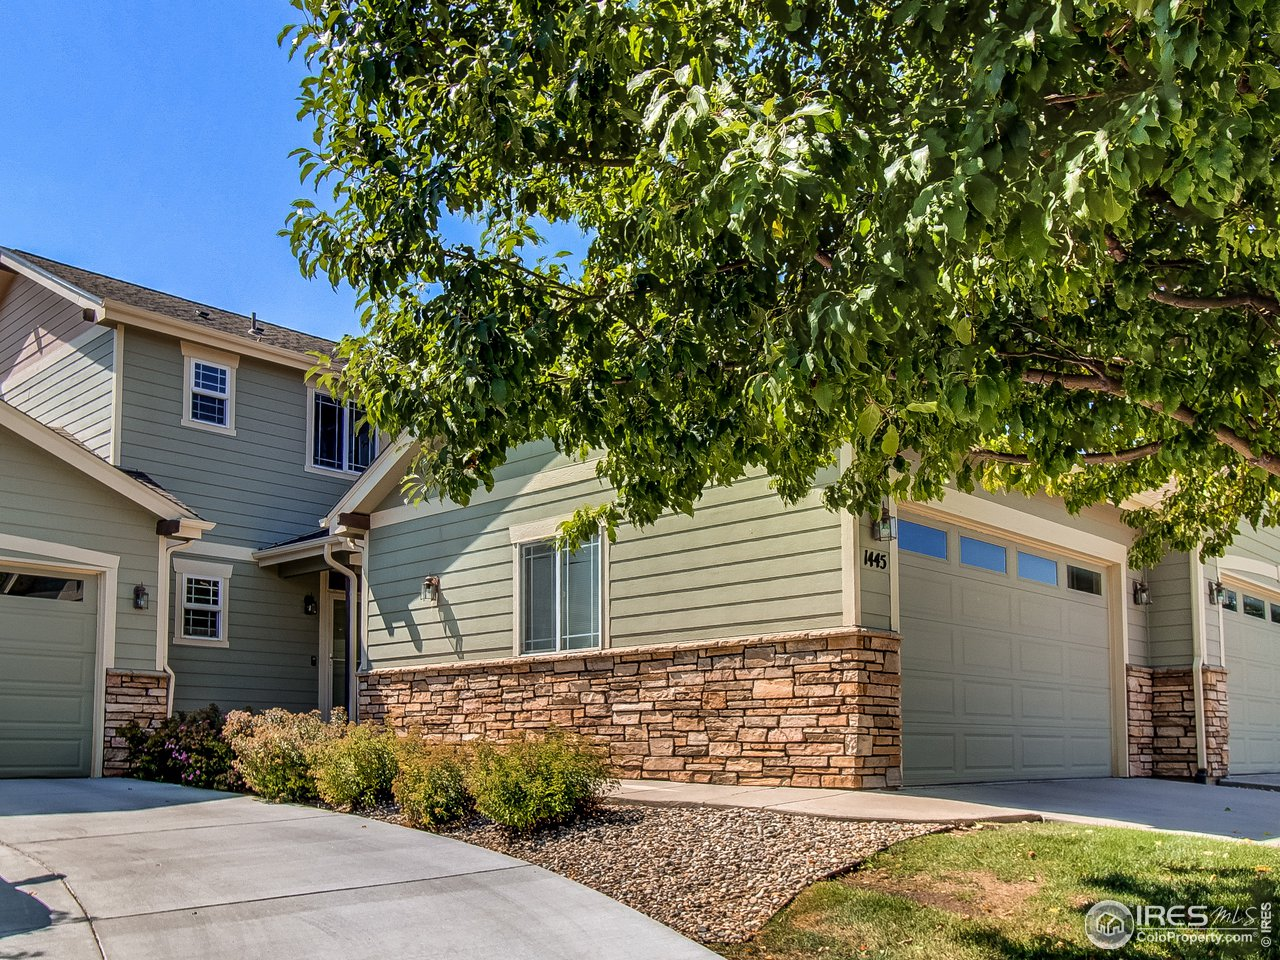 1445 Sailcrest Ct, Fort Collins CO 80526